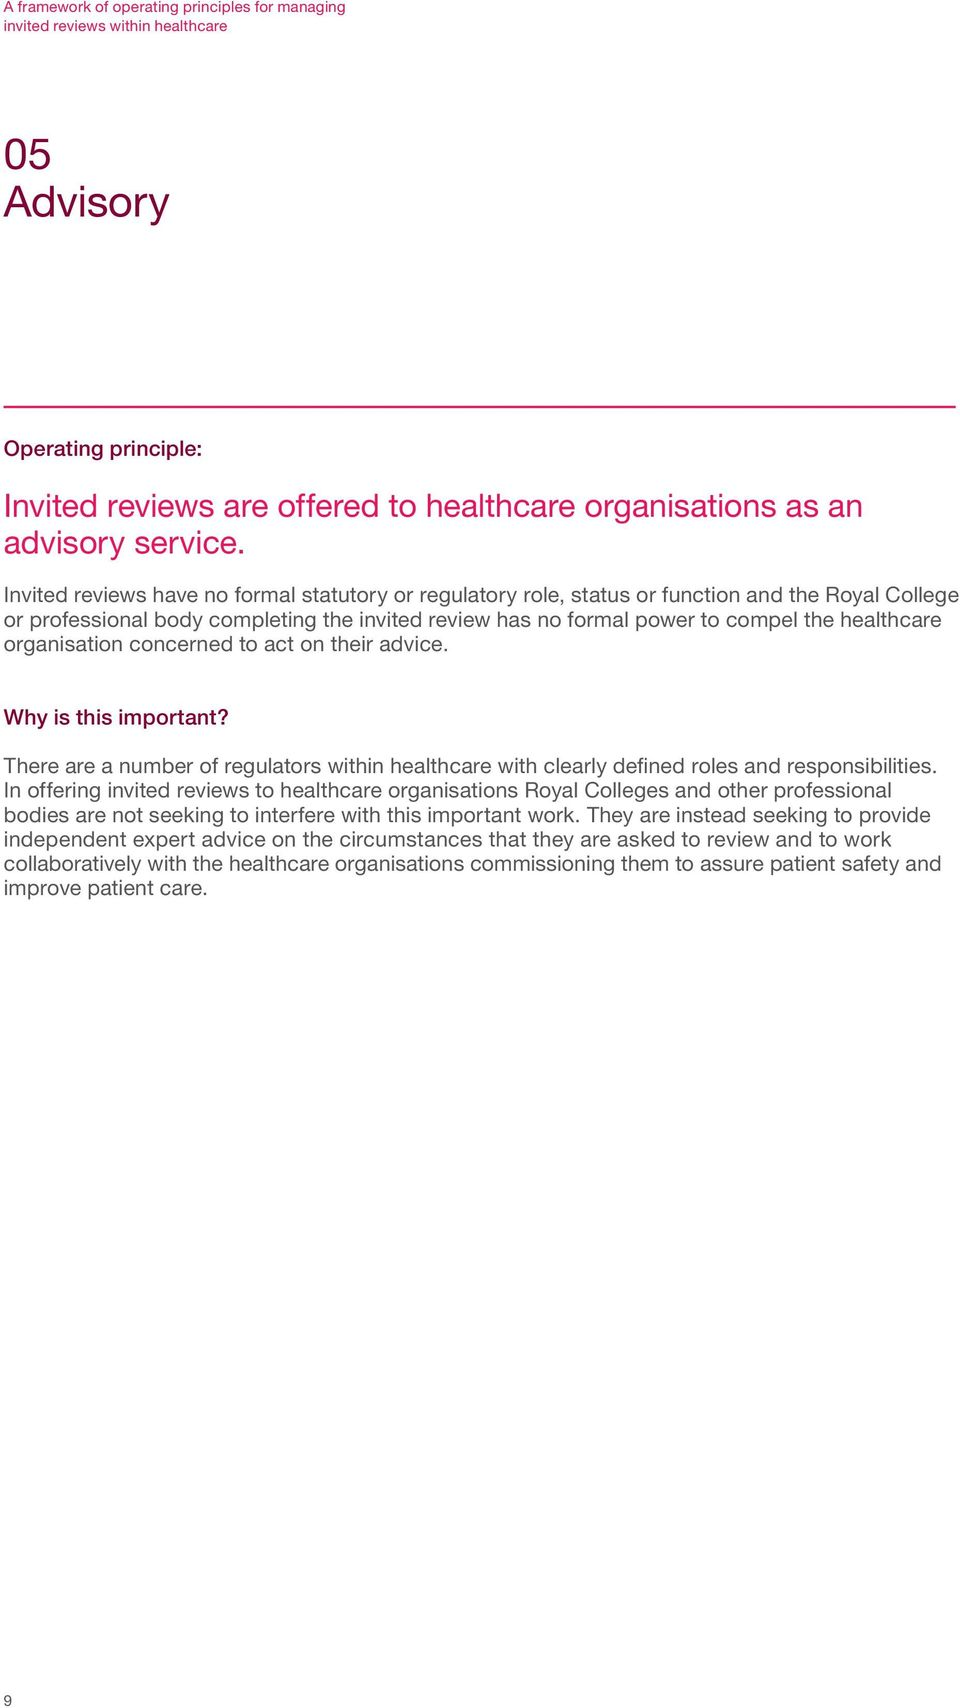 organisation concerned to act on their advice. There are a number of regulators within healthcare with clearly defined roles and responsibilities.